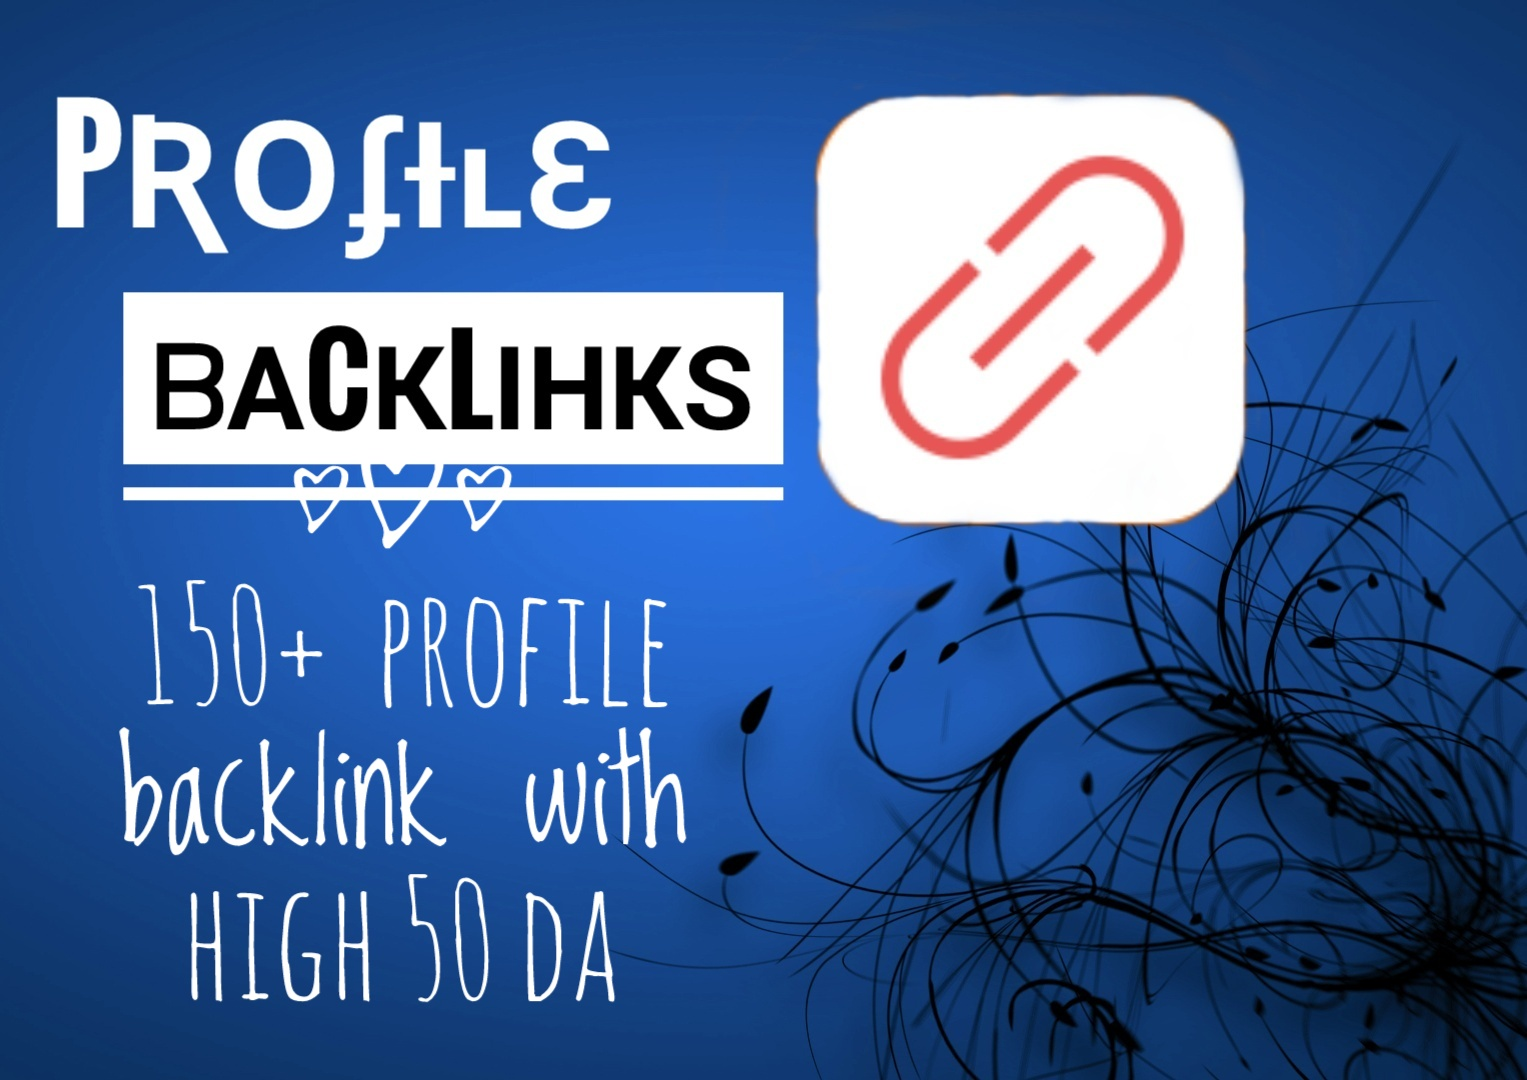 I will do 150 manual dofollow profile backlinks with more than 50 DA